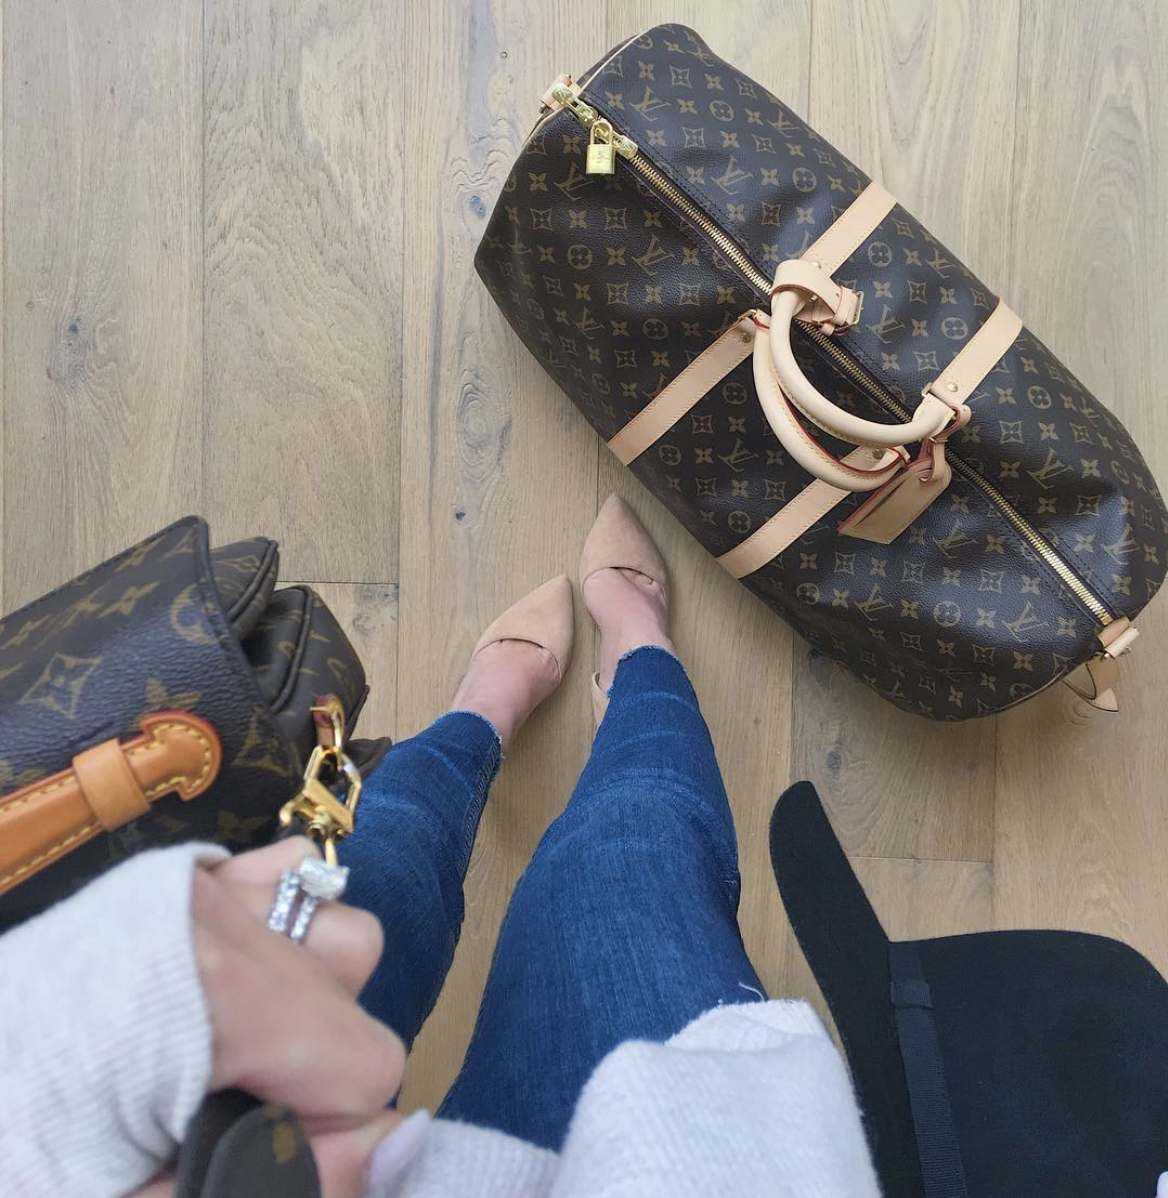 Louis Vuitton Pochette Metis Review